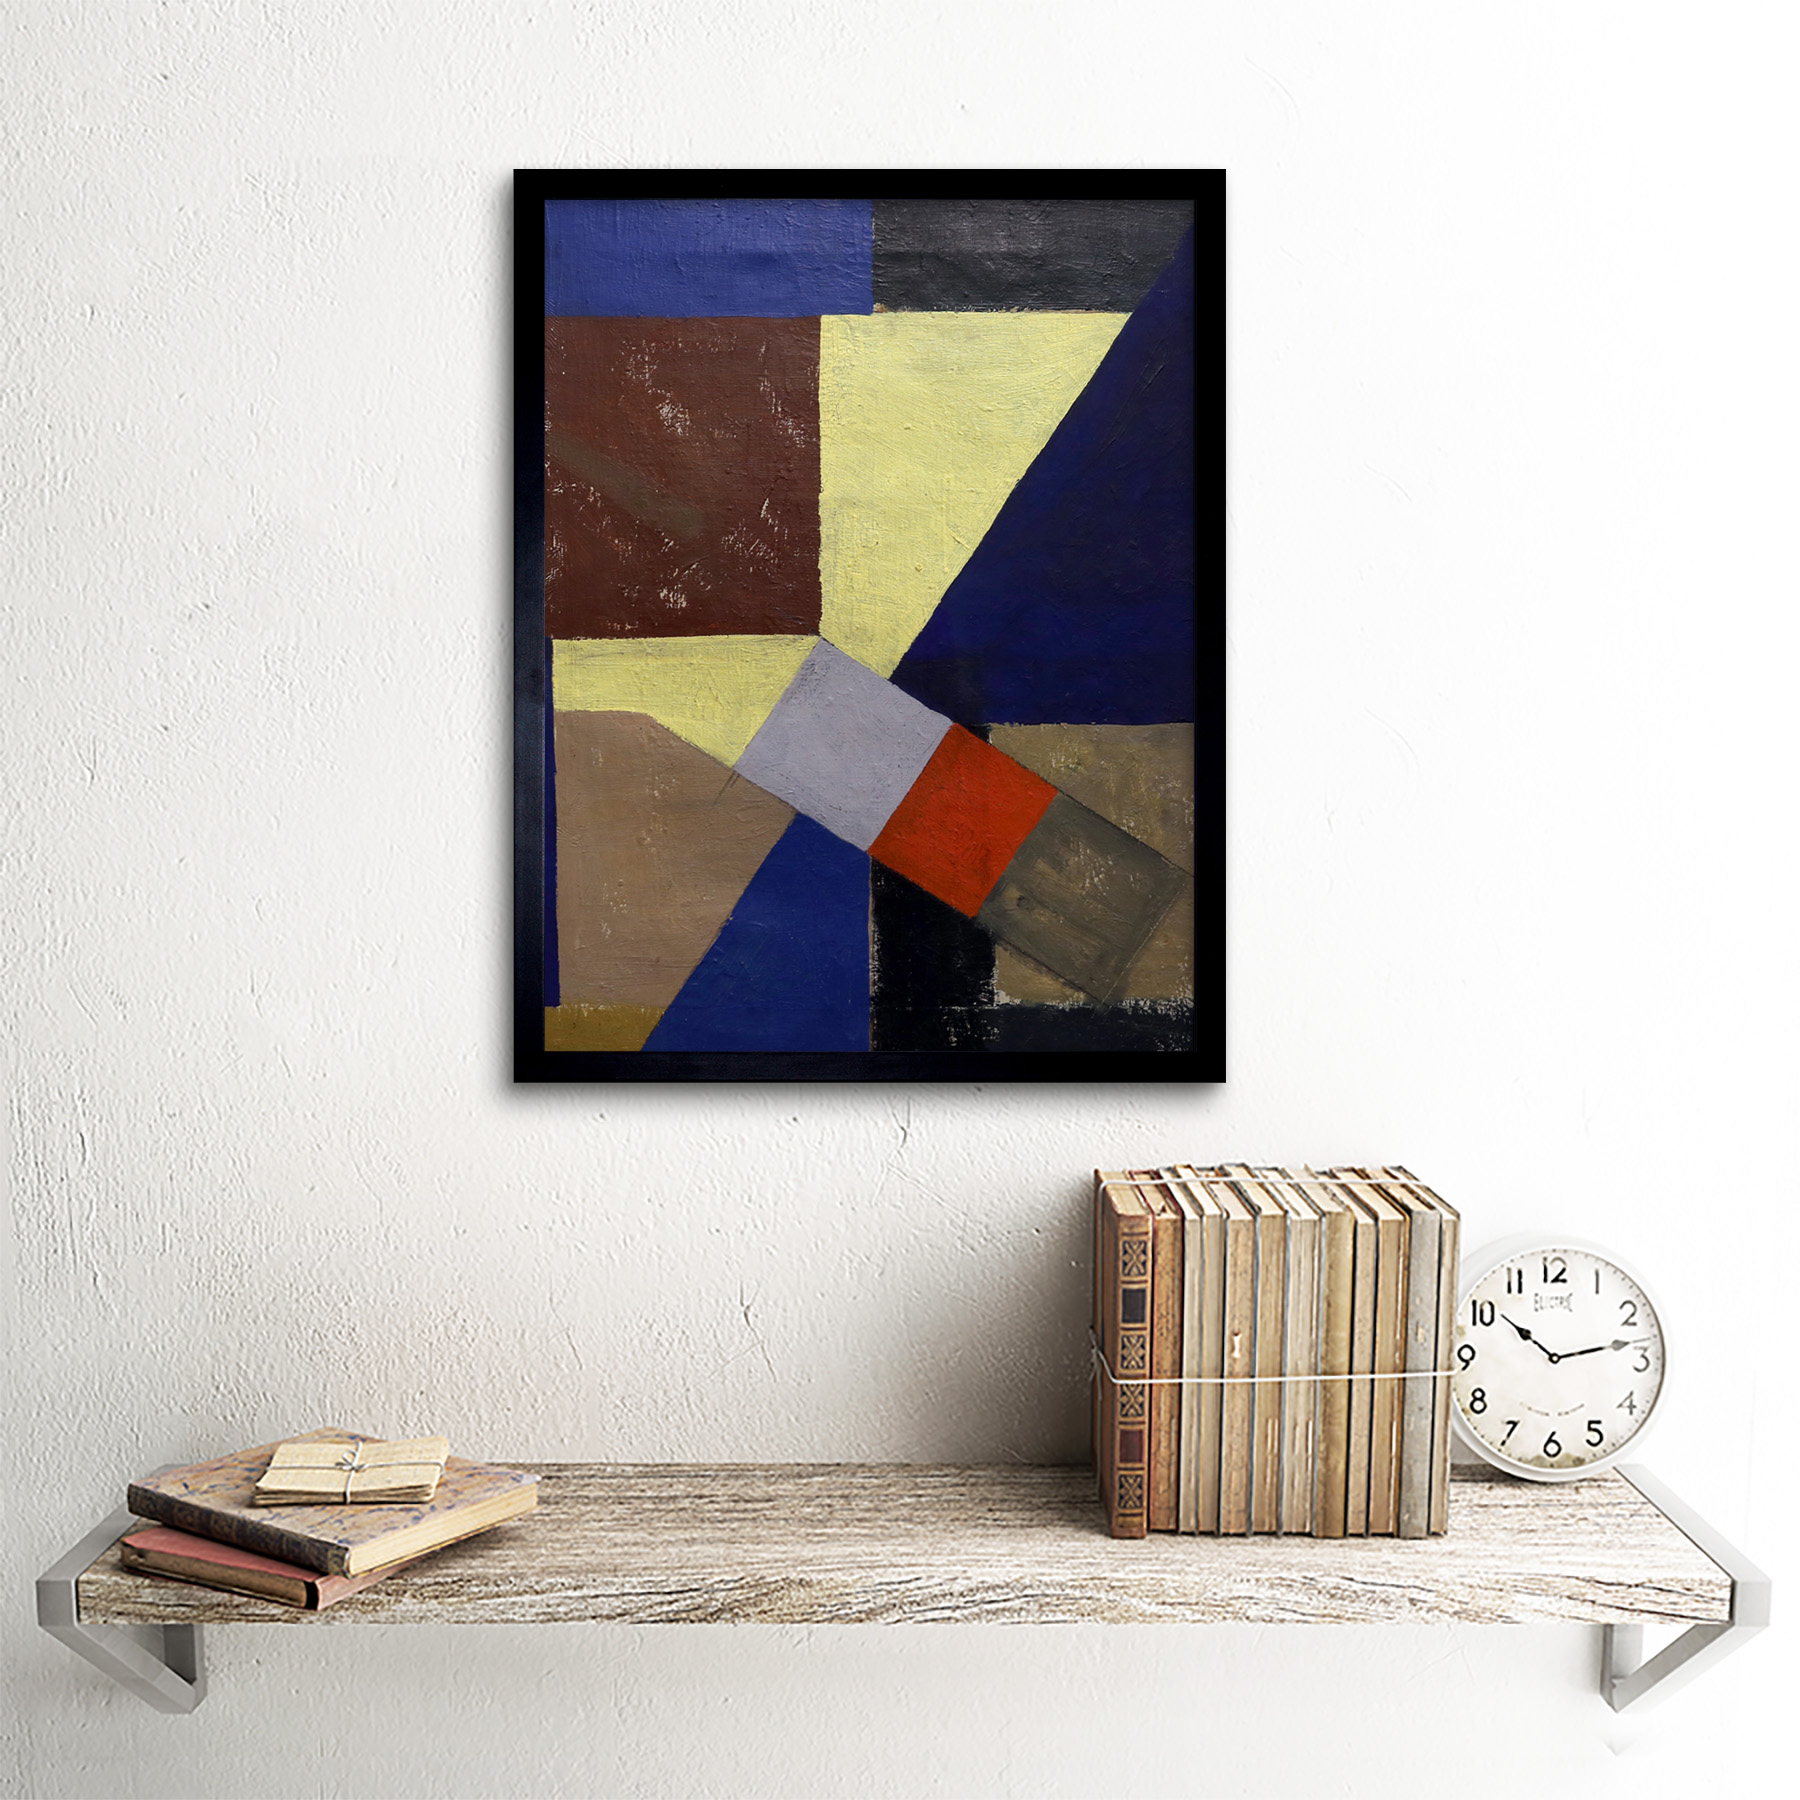 Schwitters-Kurt-Abstract-Composition-Painting-Wall-Art-Print-Framed-12x16 thumbnail 3